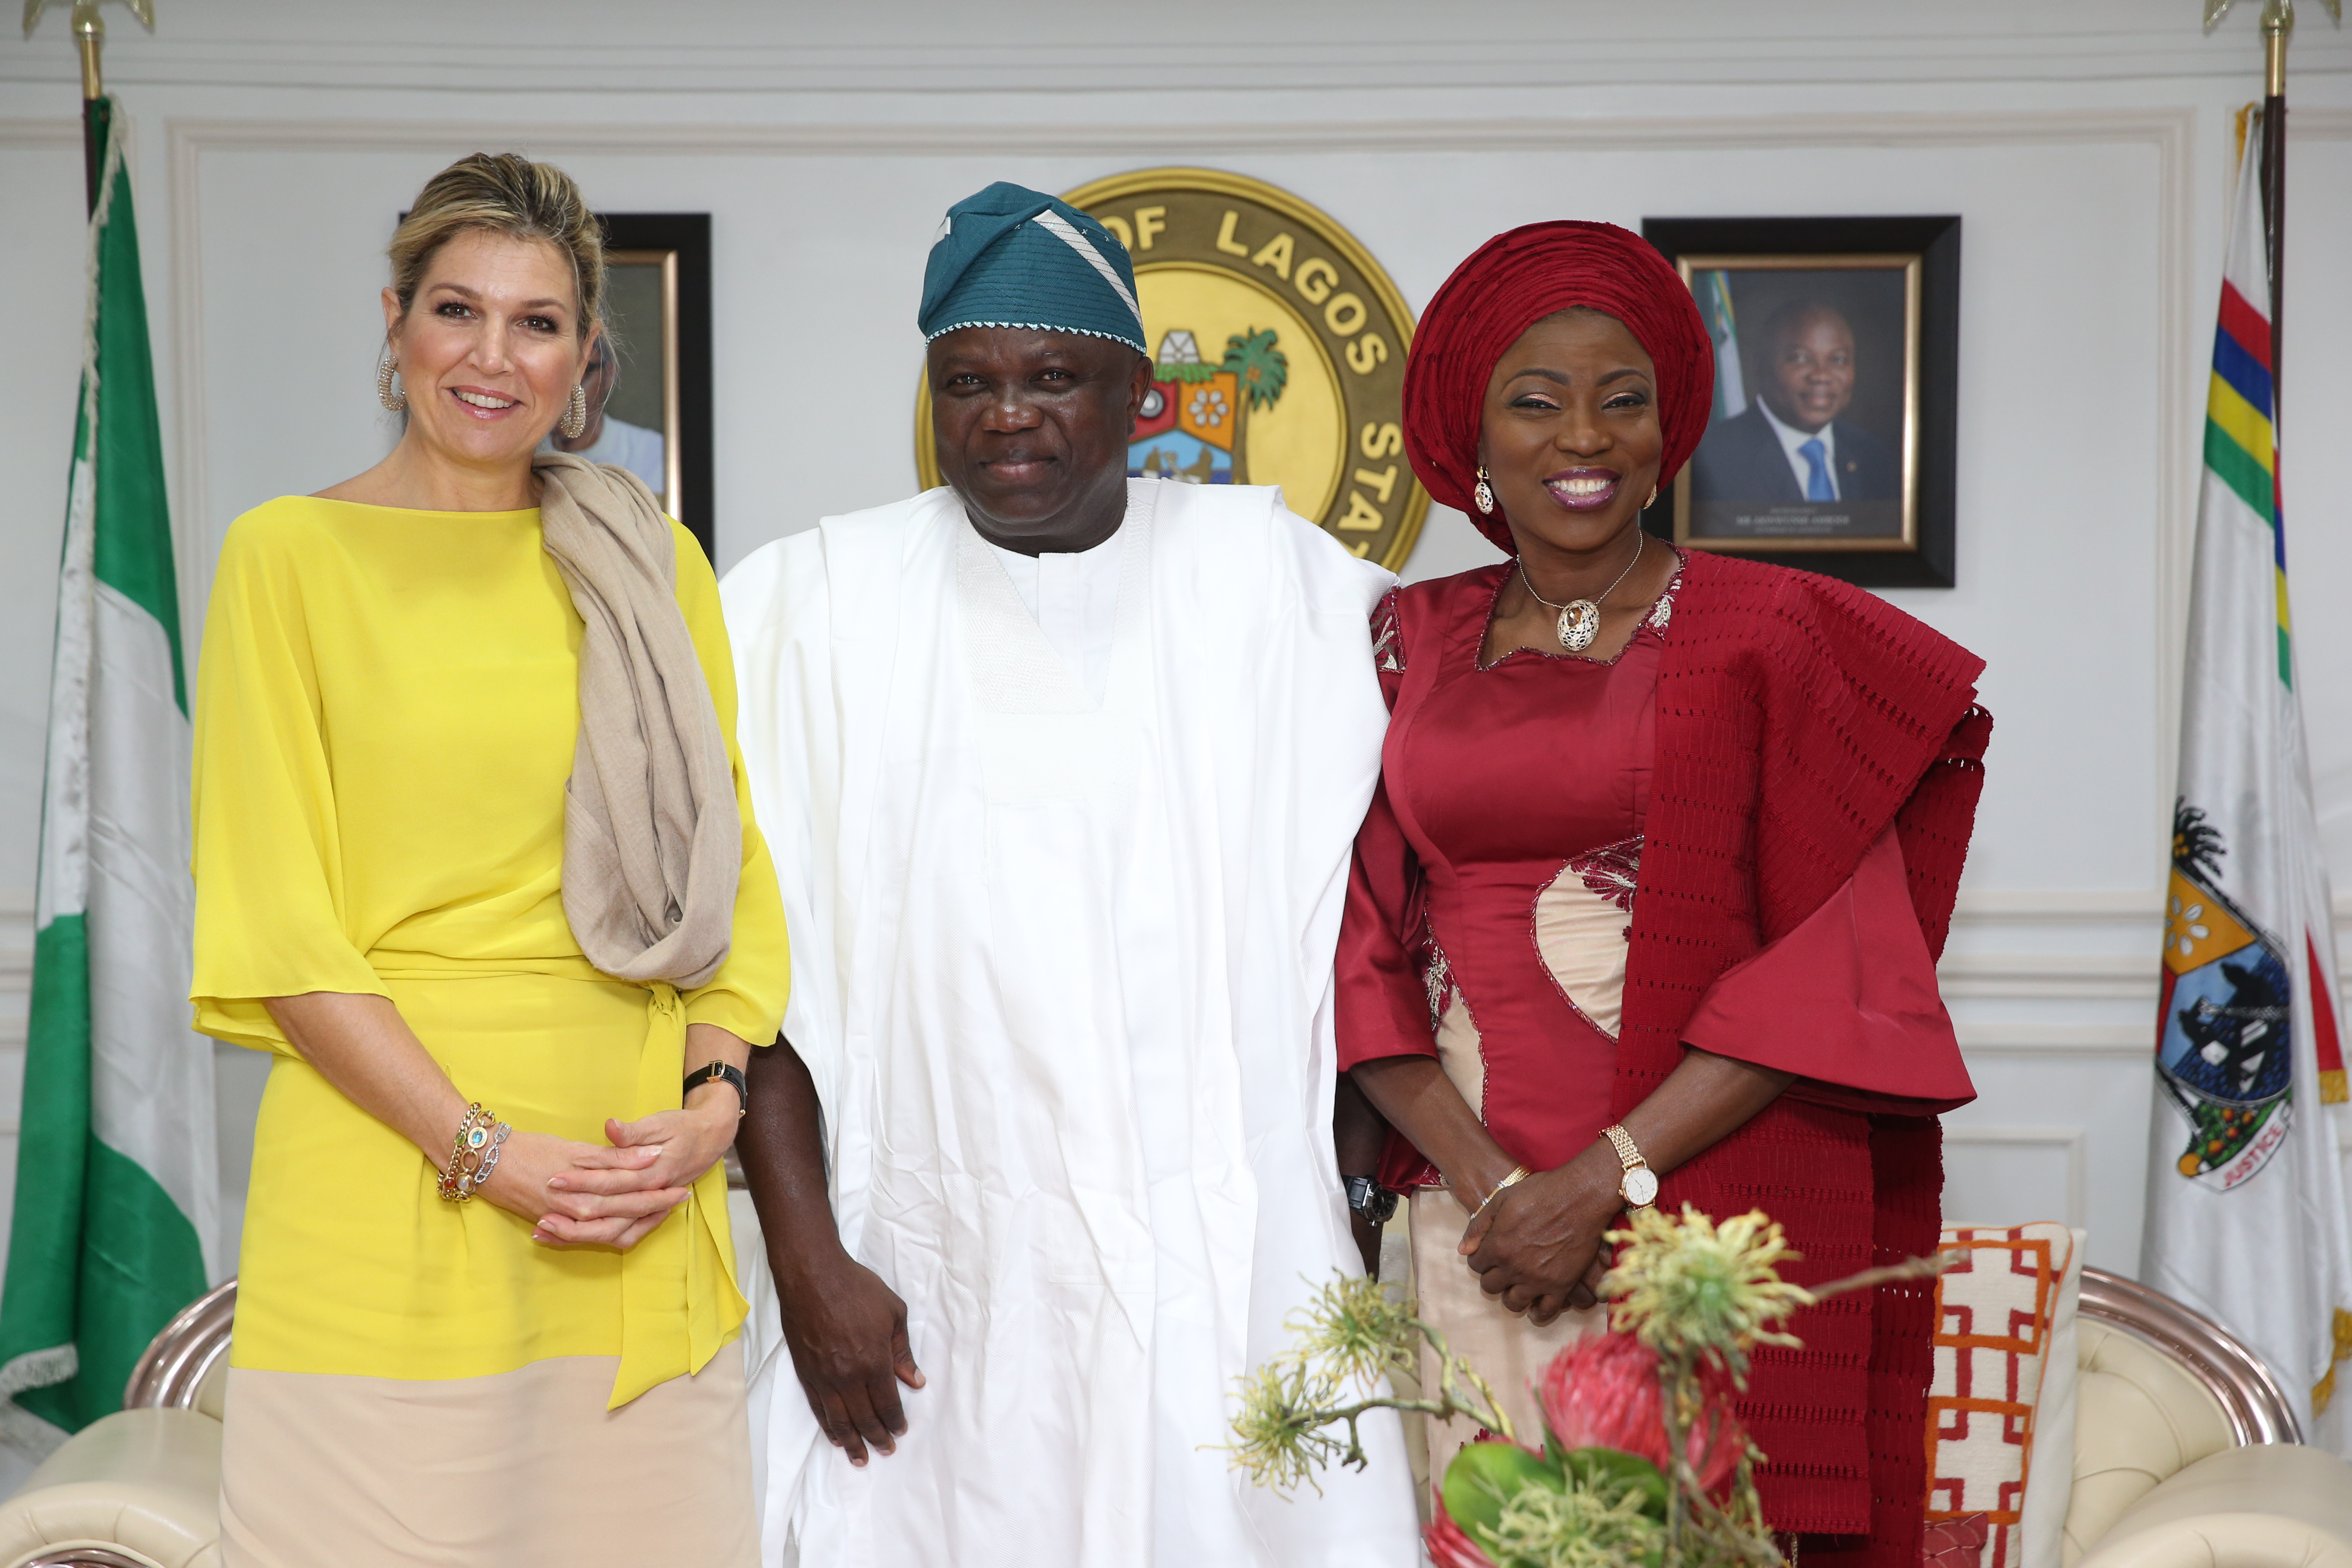 Lagos State Governor, Mr. Akinwunmi Ambode (middle); his wife, Bolanle (right) and Queen Maxima Zorreguieta Cerruti of the Netherlands (left) during the Queen's courtesy visit at the Lagos House, Ikeja, on Tuesday, October 31, 2017.